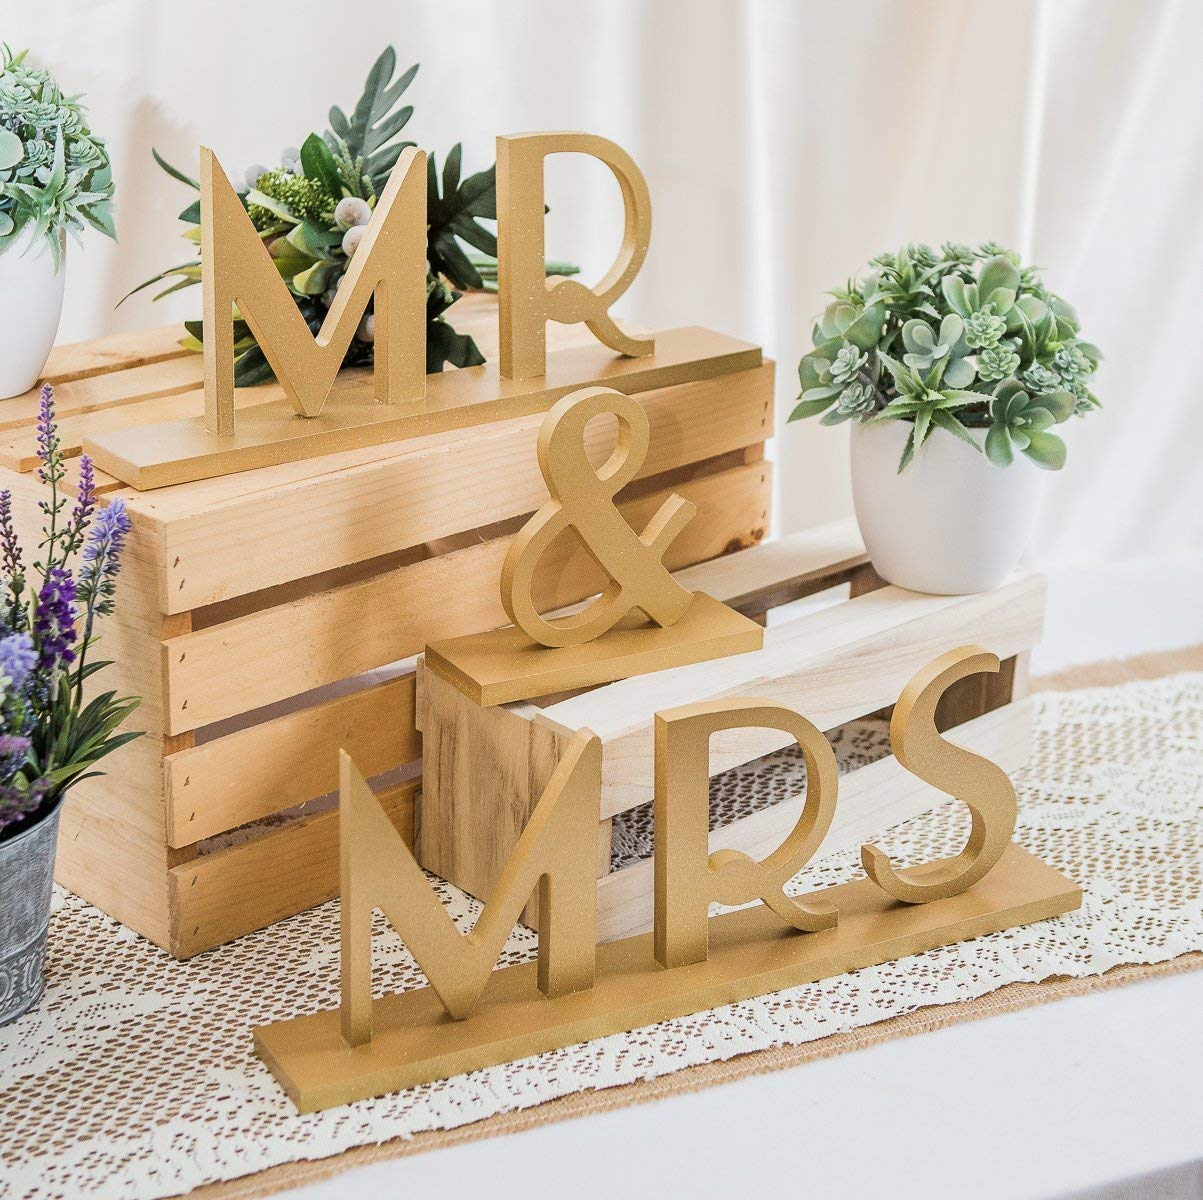 Mr & Mrs Wedding Signs for Table in Gatsby Style for 1920s Flapper Style Sweetheart Table Decor - Great Gatsby Wedding